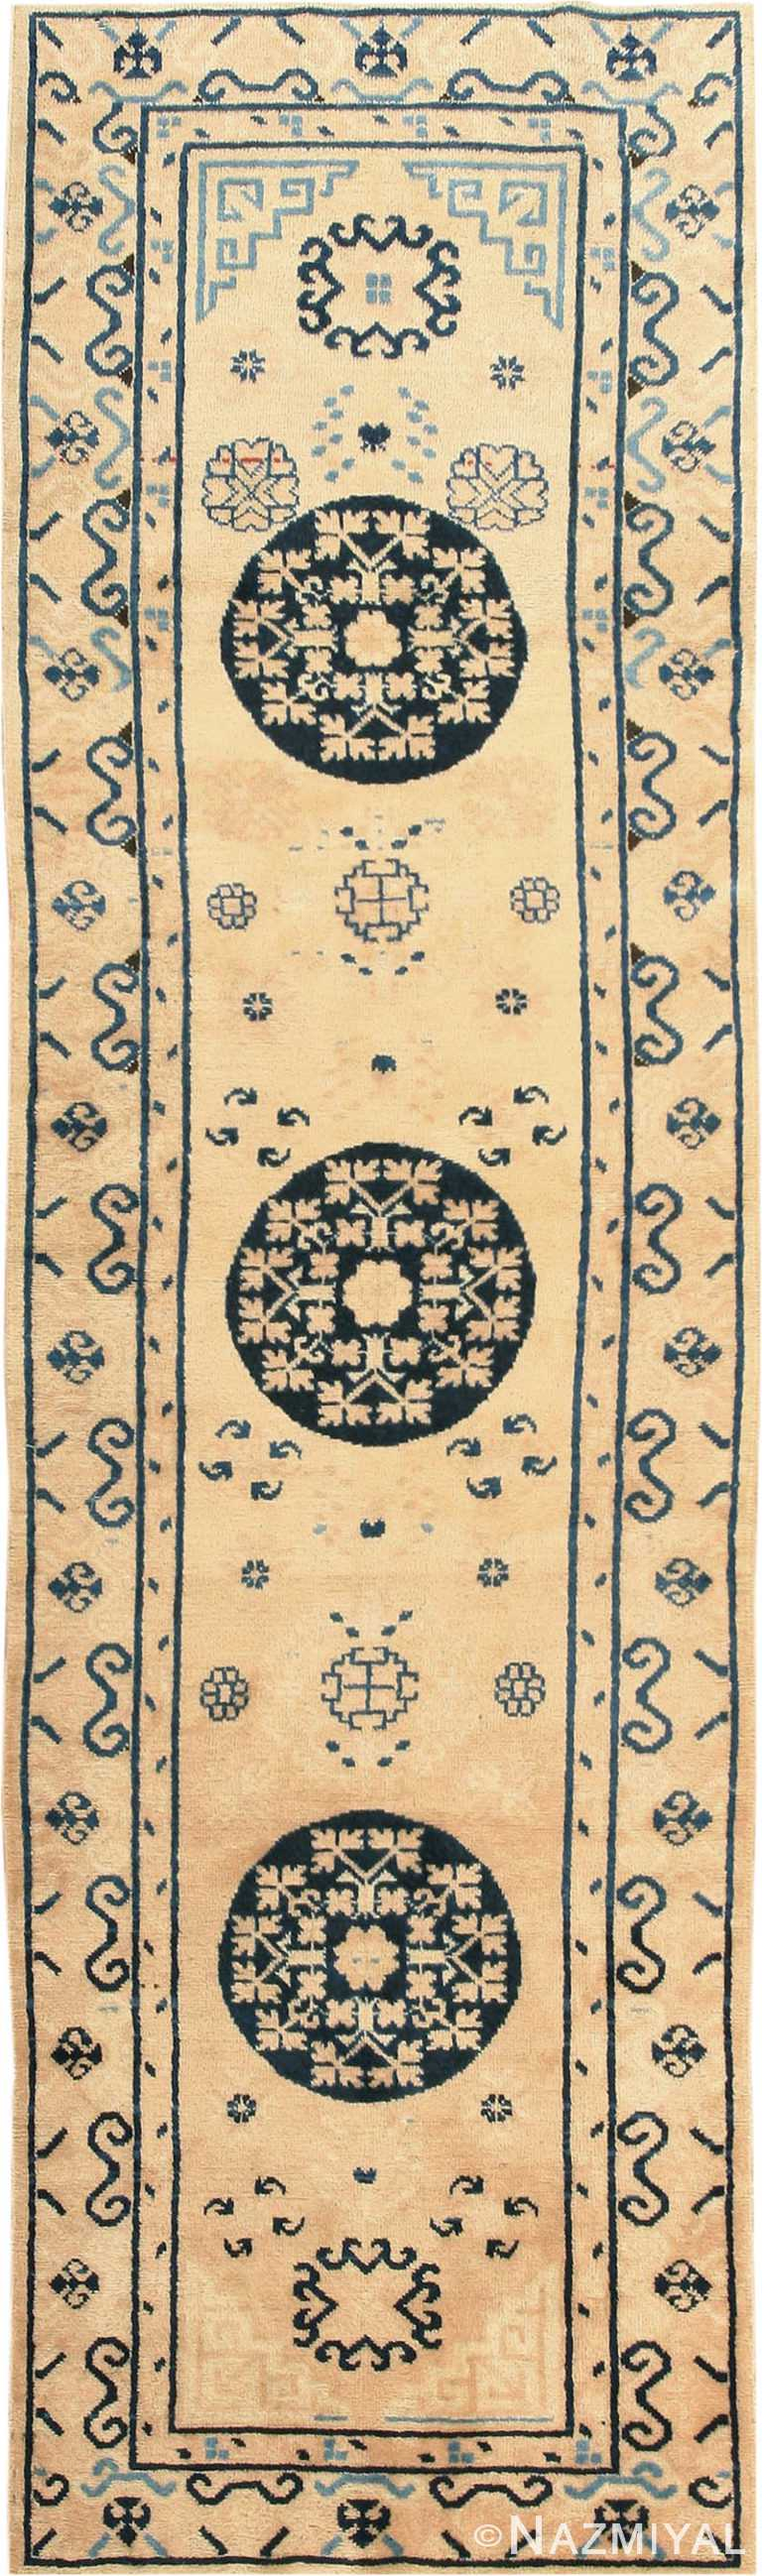 Decorative Ivory and Blue Antique Khotan Runner Rug #42193 by Nazmiyal Antique Rugs